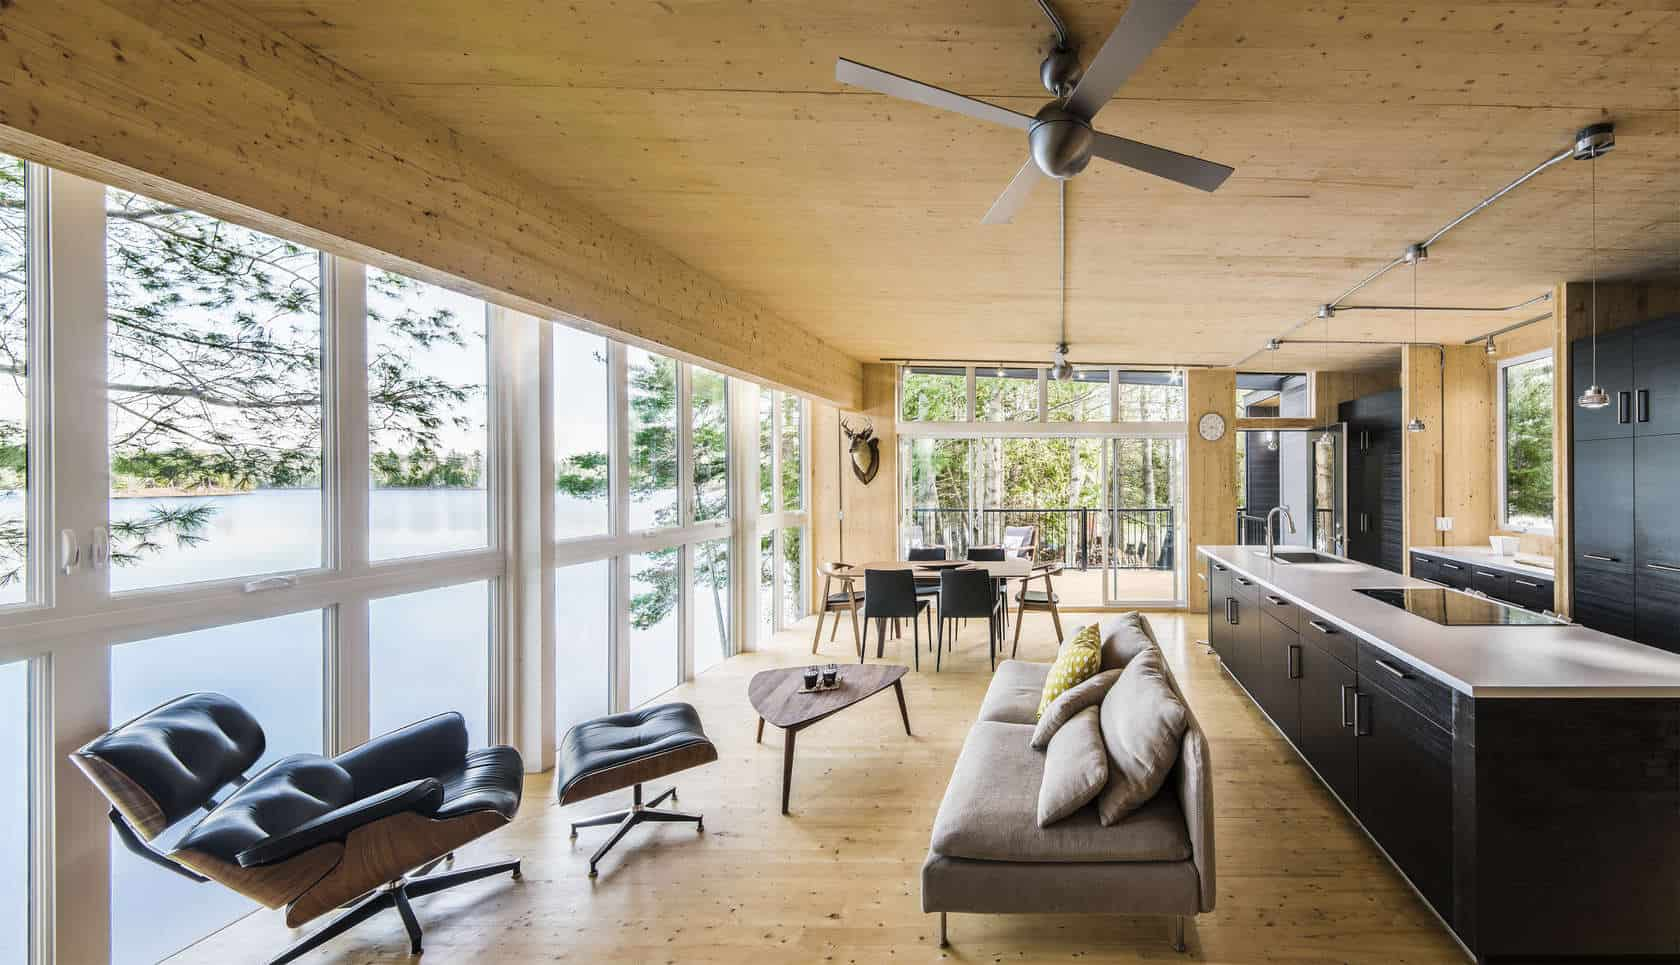 Prefab Lake Cottage With Cross Laminated Timber Construction on modern cottage design cross laminated wood